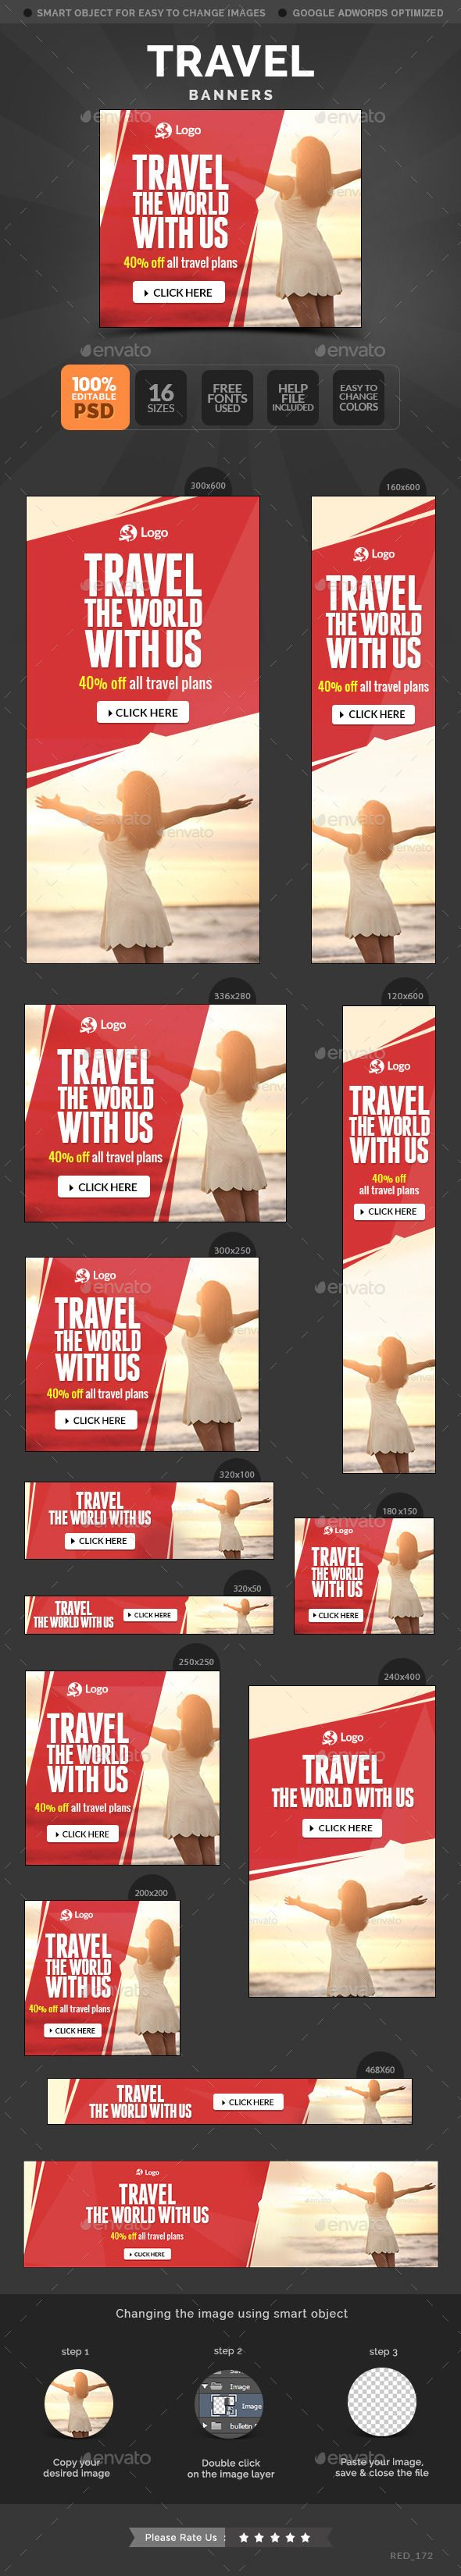 Travel Banners Template #design Download: http://graphicriver.net/item/travel-banners/11405516?ref=ksioks